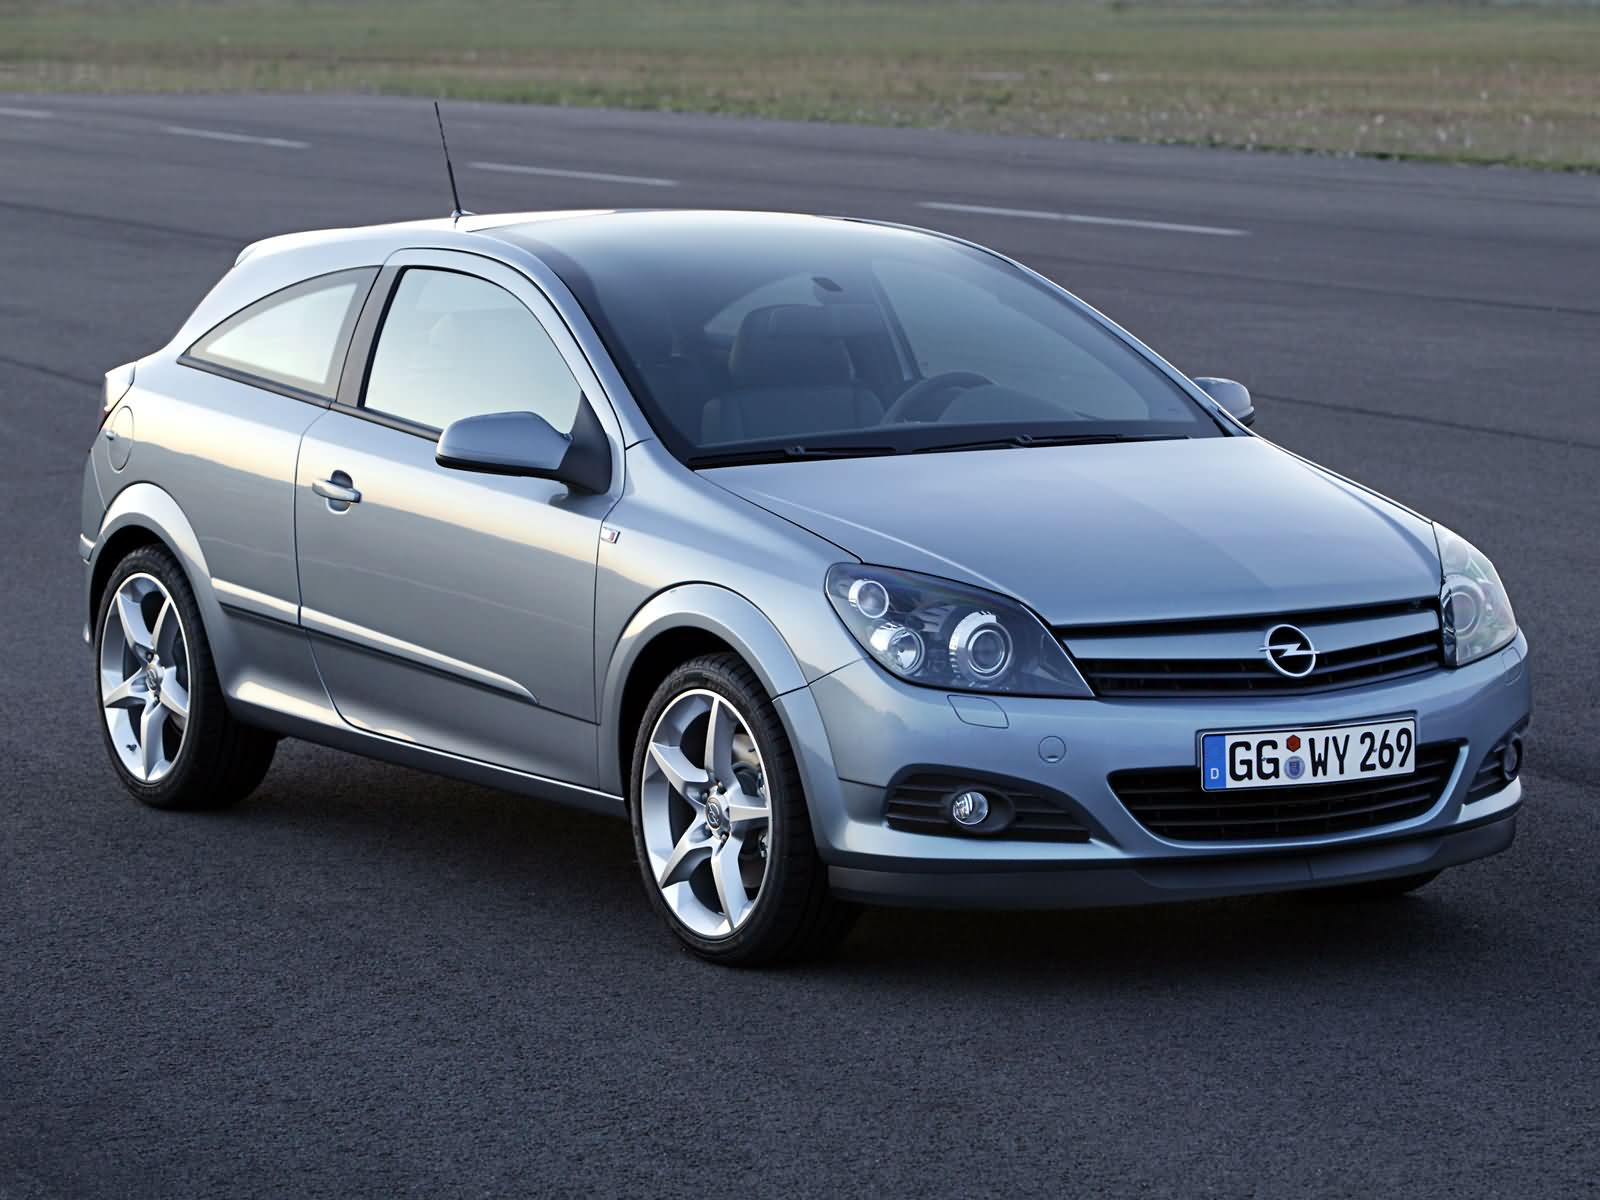 opel astra h gtc 2005 opel astra h gtc 2005 photo 08 car in pictures car photo gallery. Black Bedroom Furniture Sets. Home Design Ideas